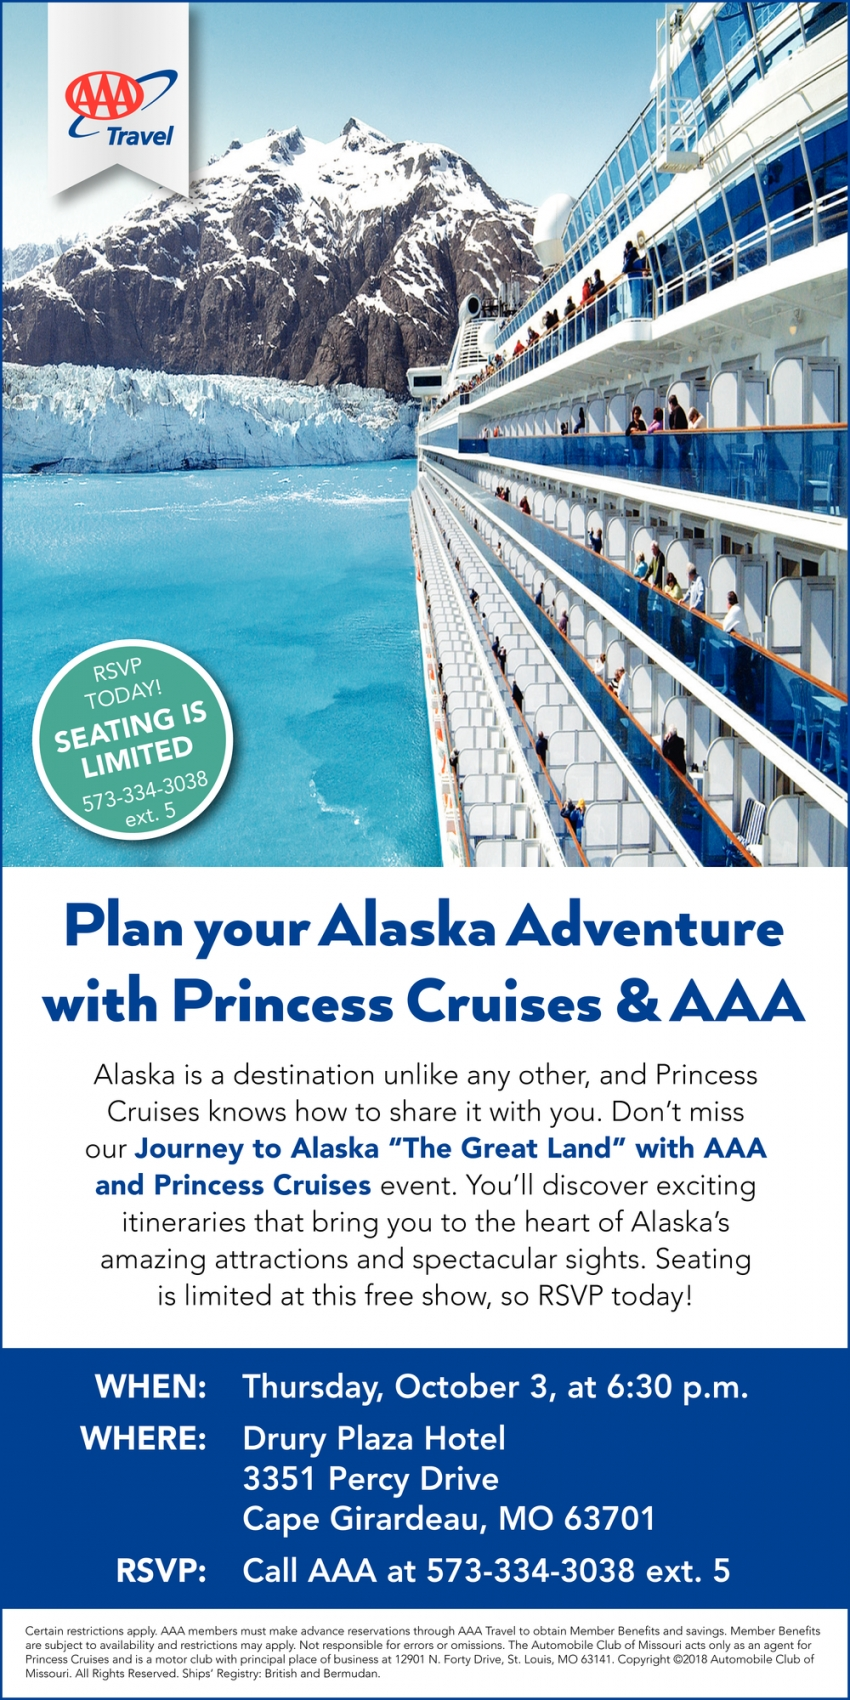 Plan Your Alaska Adventure with Princess Cruises & AAA